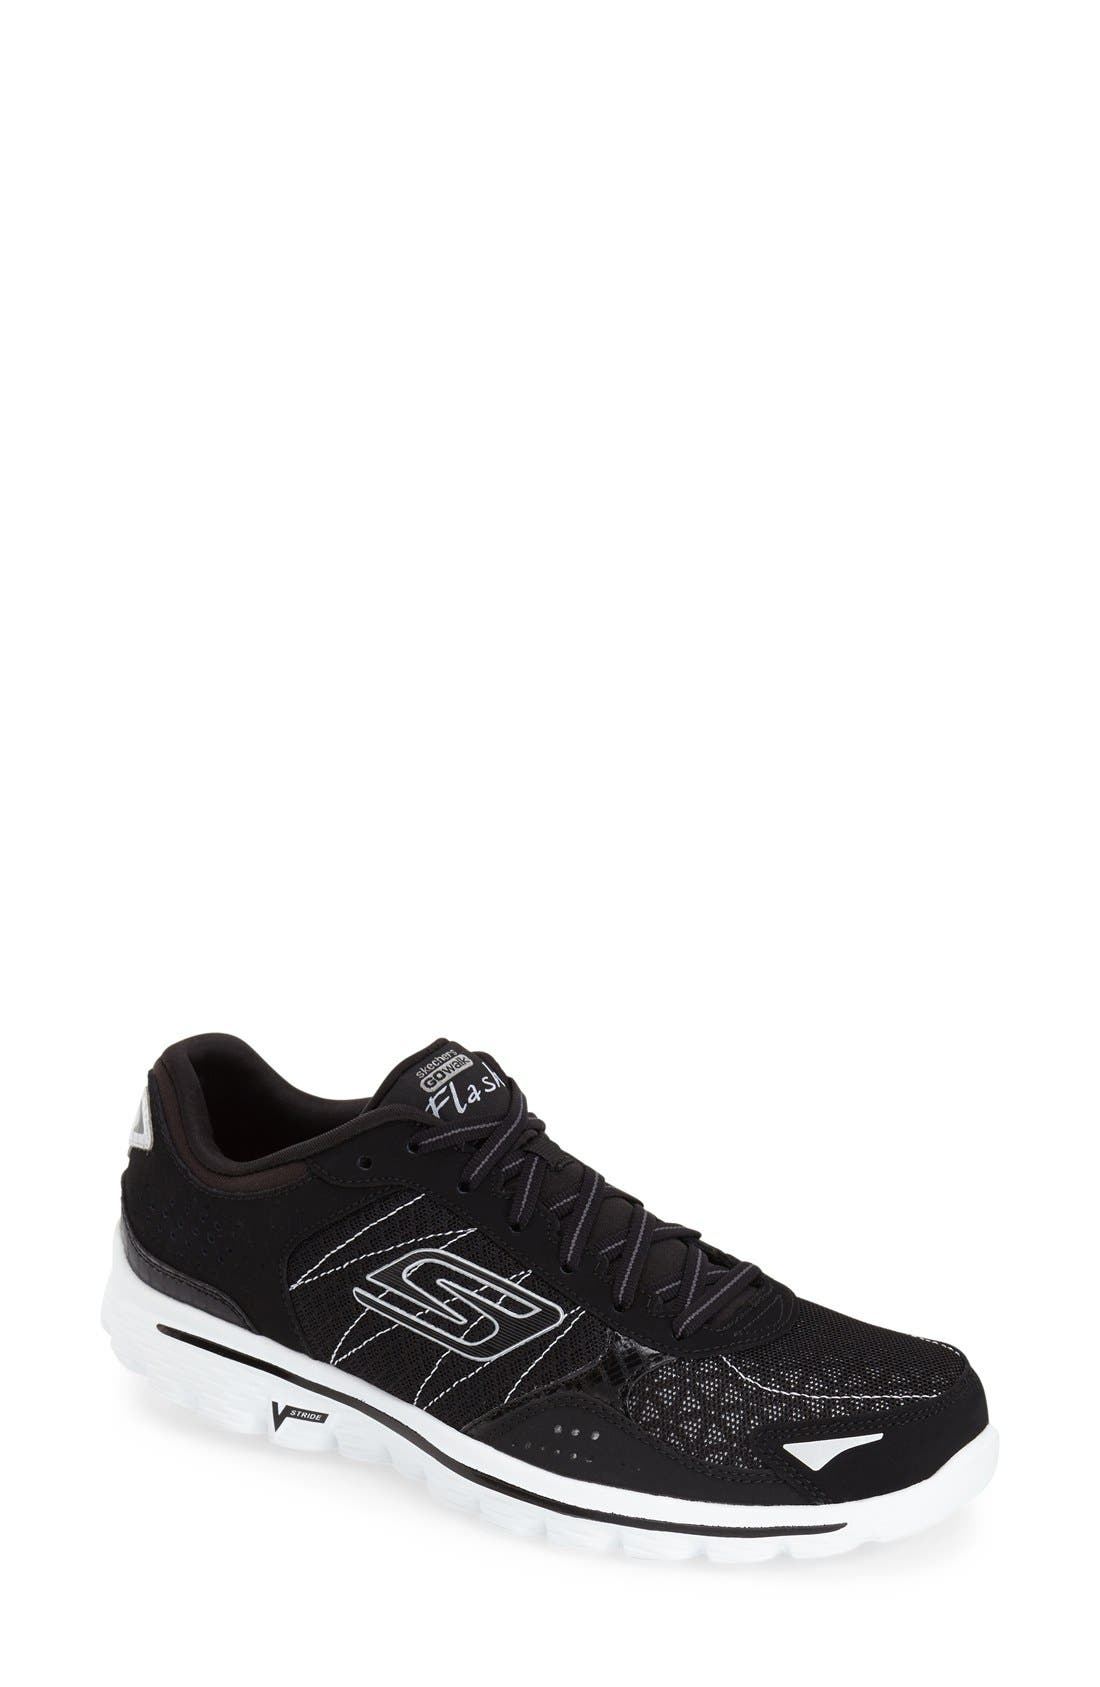 Main Image - SKECHERS 'GOwalk 2 - Flash' Sneaker (Women)